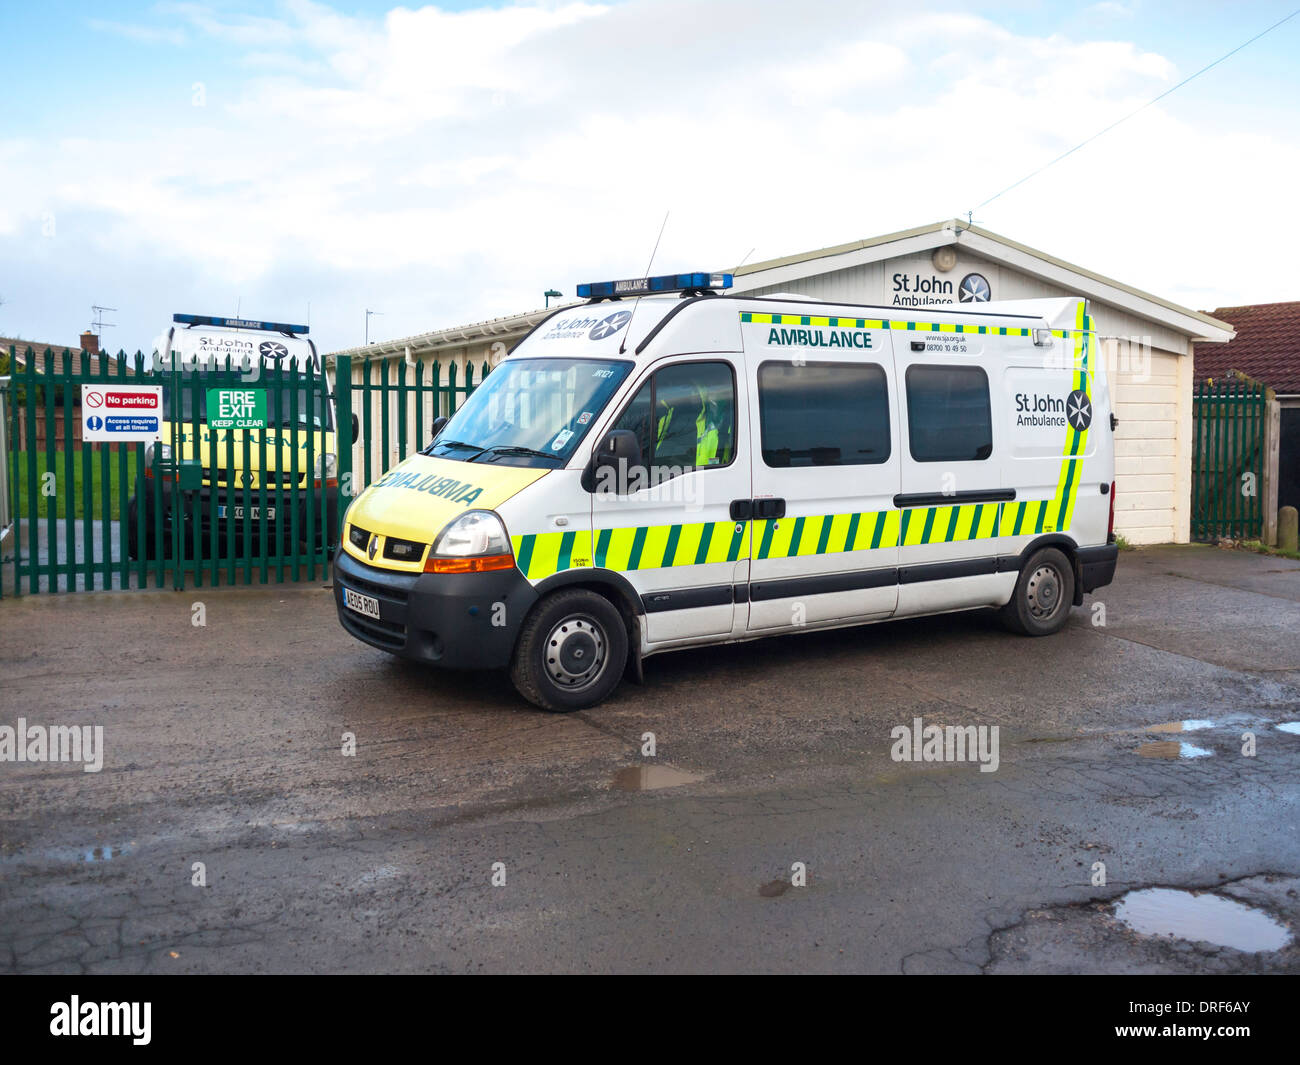 A St John Ambulance outside their hut used for meetings and equipment storage for the UK's Leading first aid - Stock Image